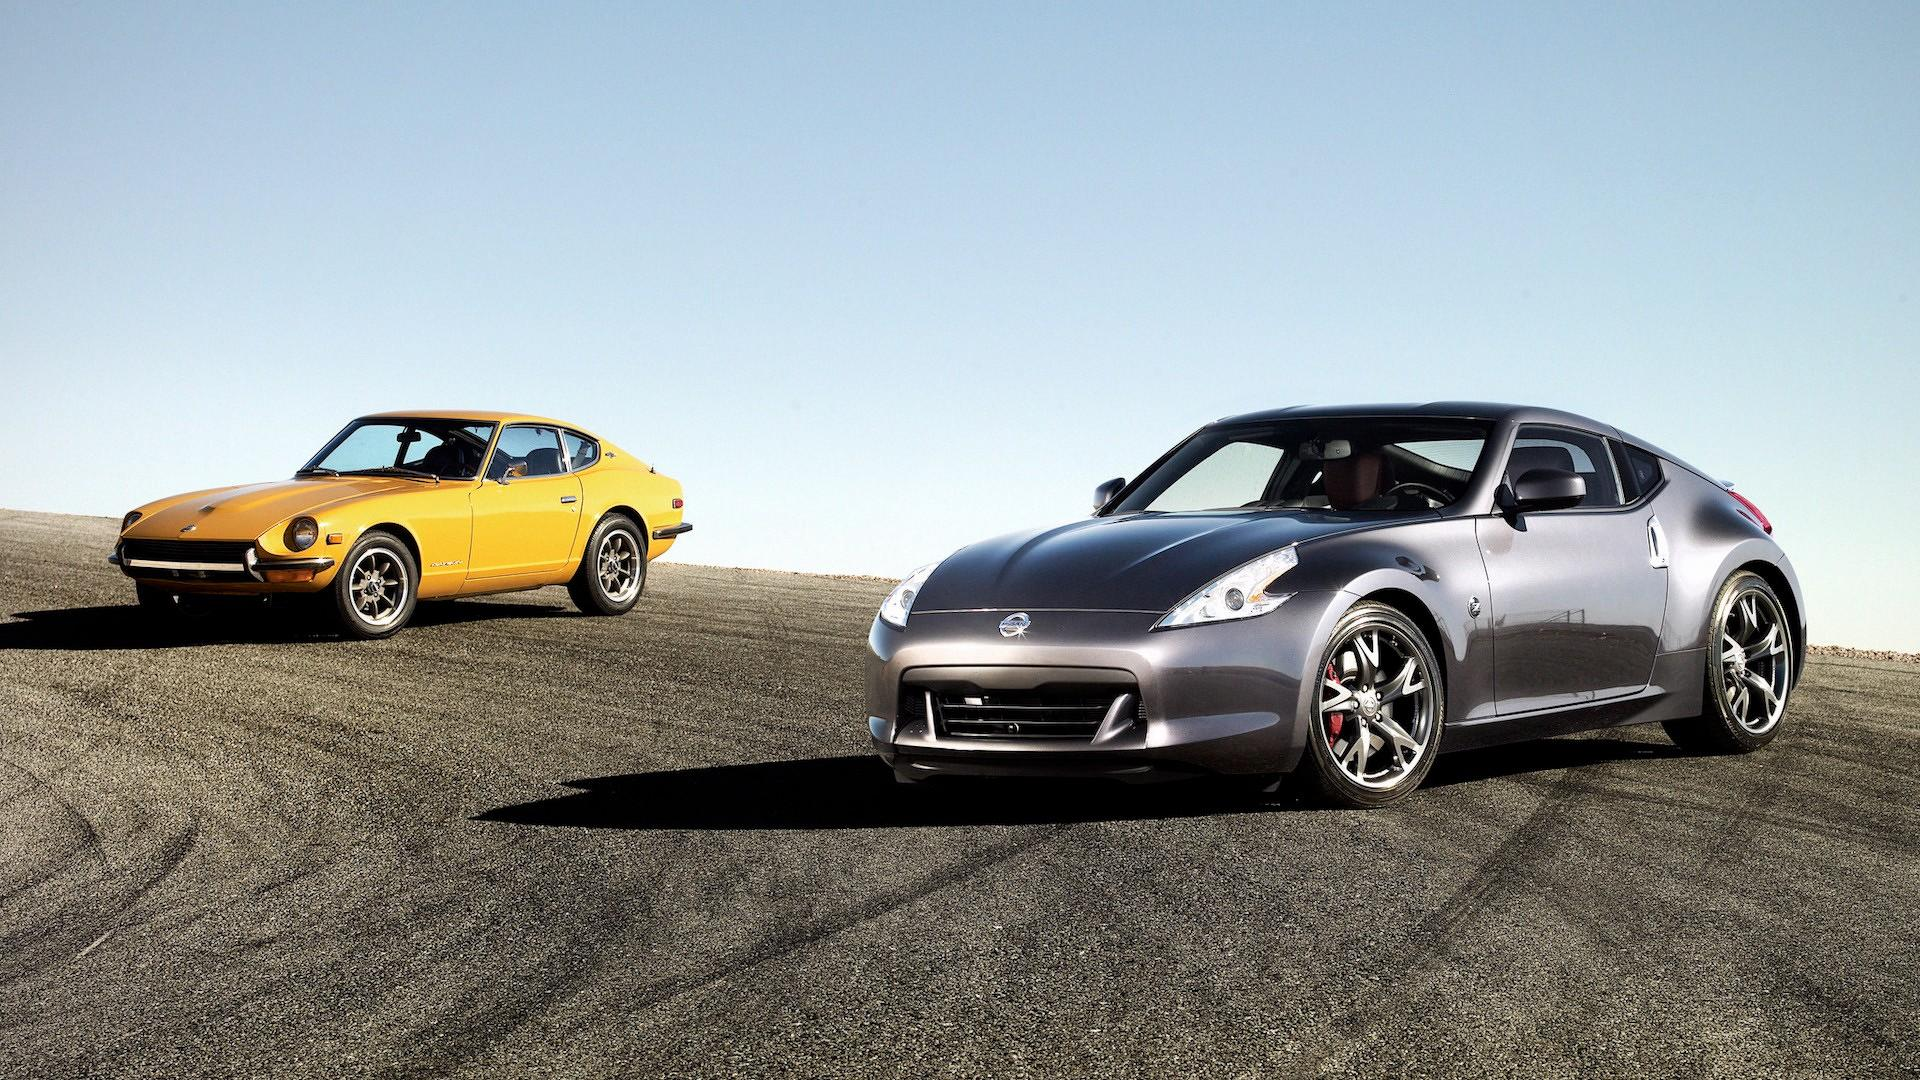 Should You Buy A New Car Or Keep The Old One Running?